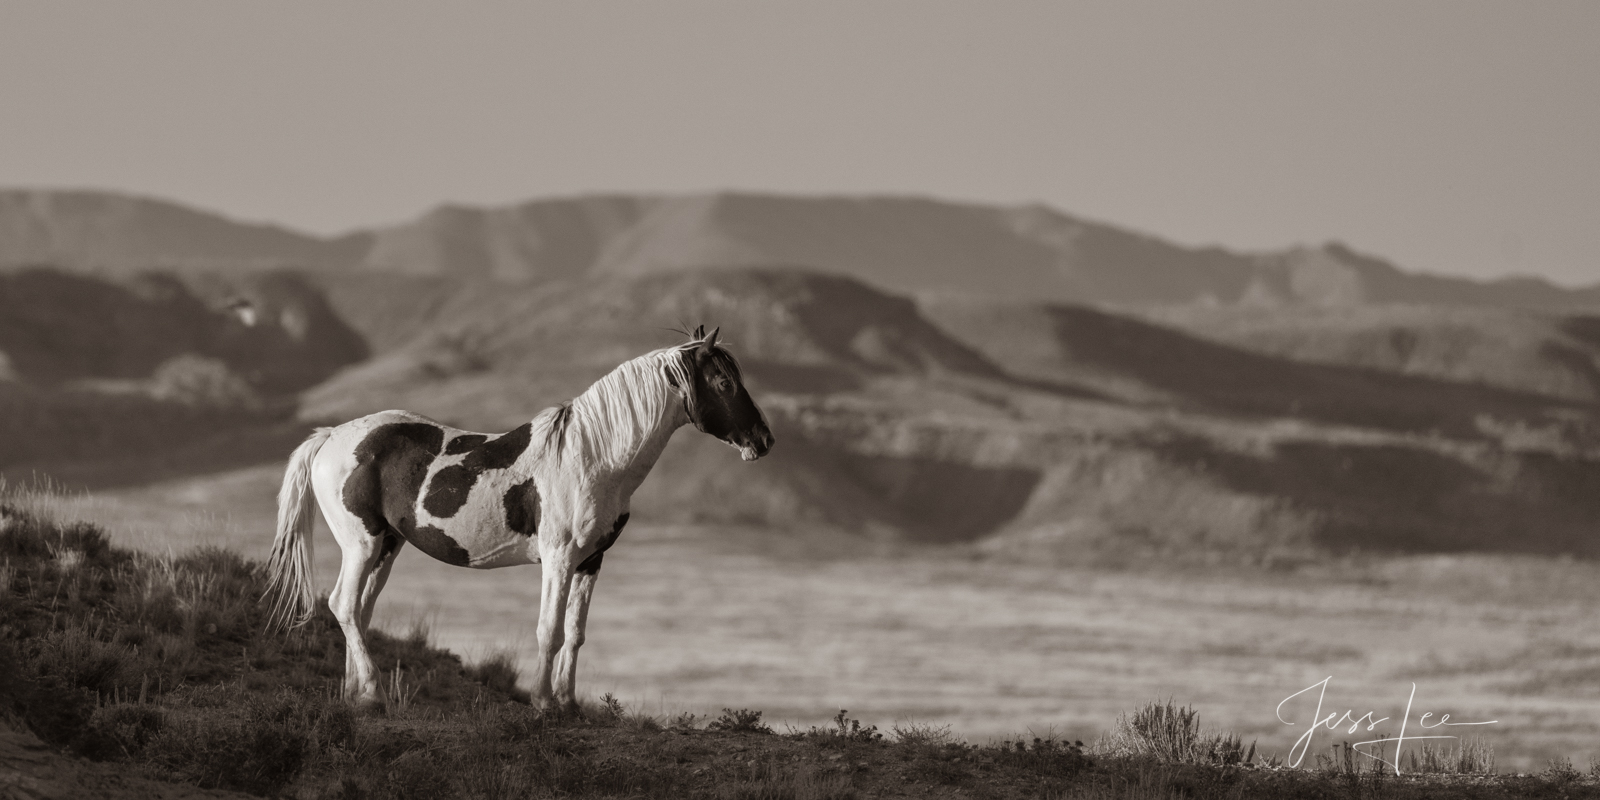 photo of wild horse in Wyoming, Mustang photography, horse photos, equine, paint, landscape, wilderness, nature, desert, black and white photography, western, ranch, fine art prints, photo